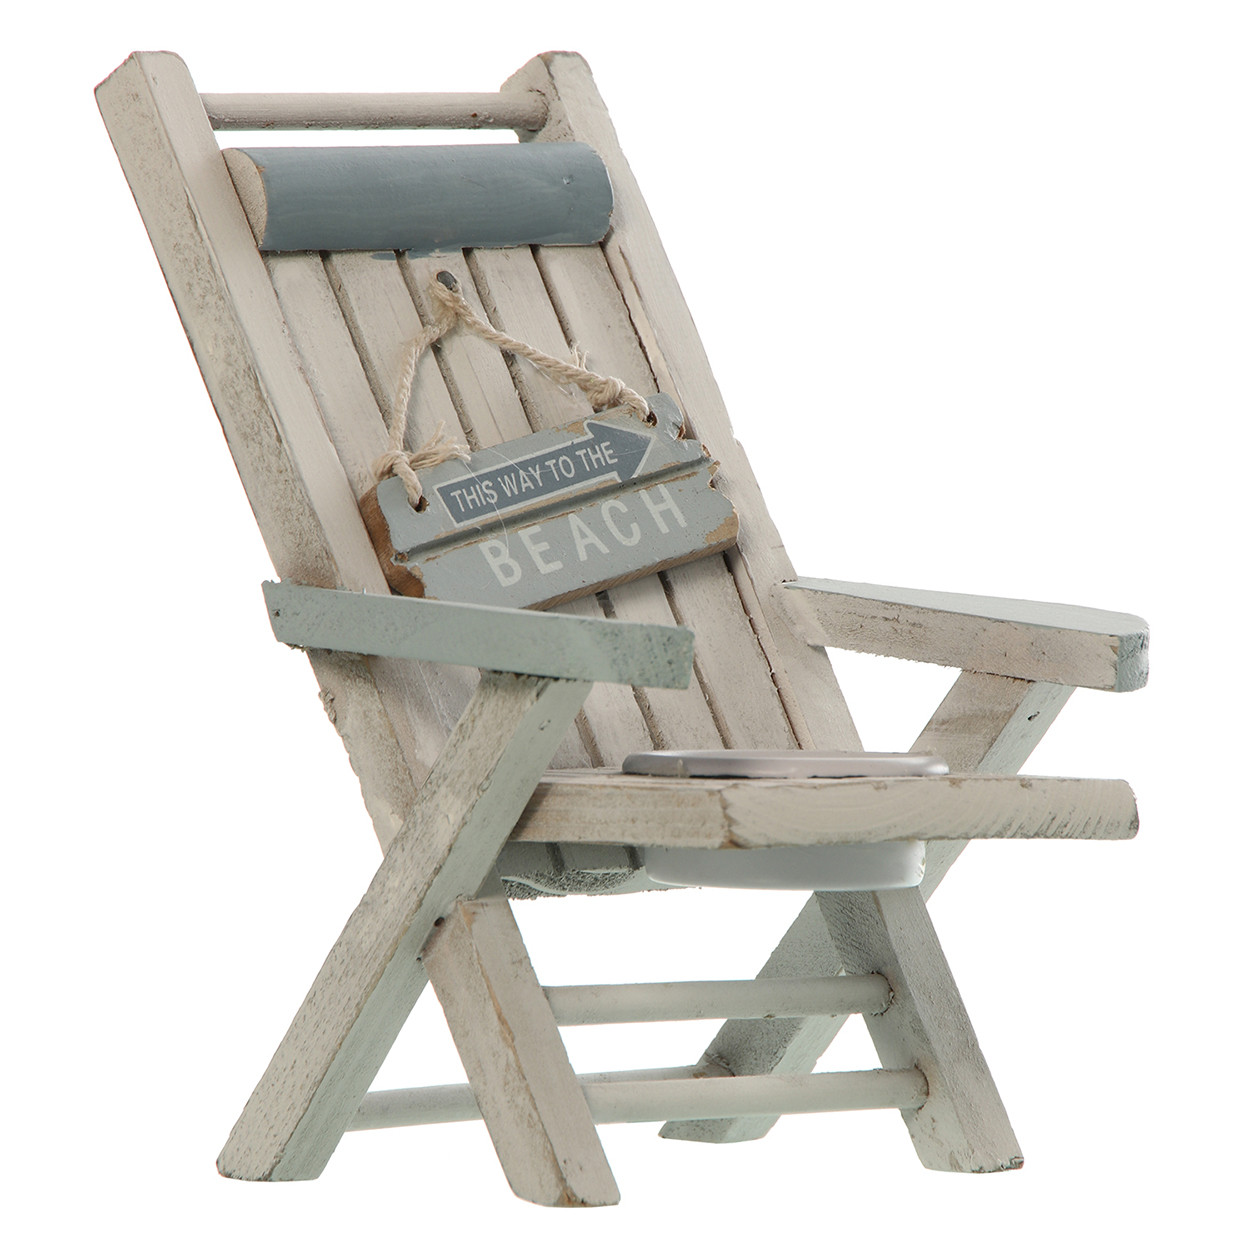 Candleholders Chair Beach Wood, candle Holders Original, 13,5x11x16cm - Home and More